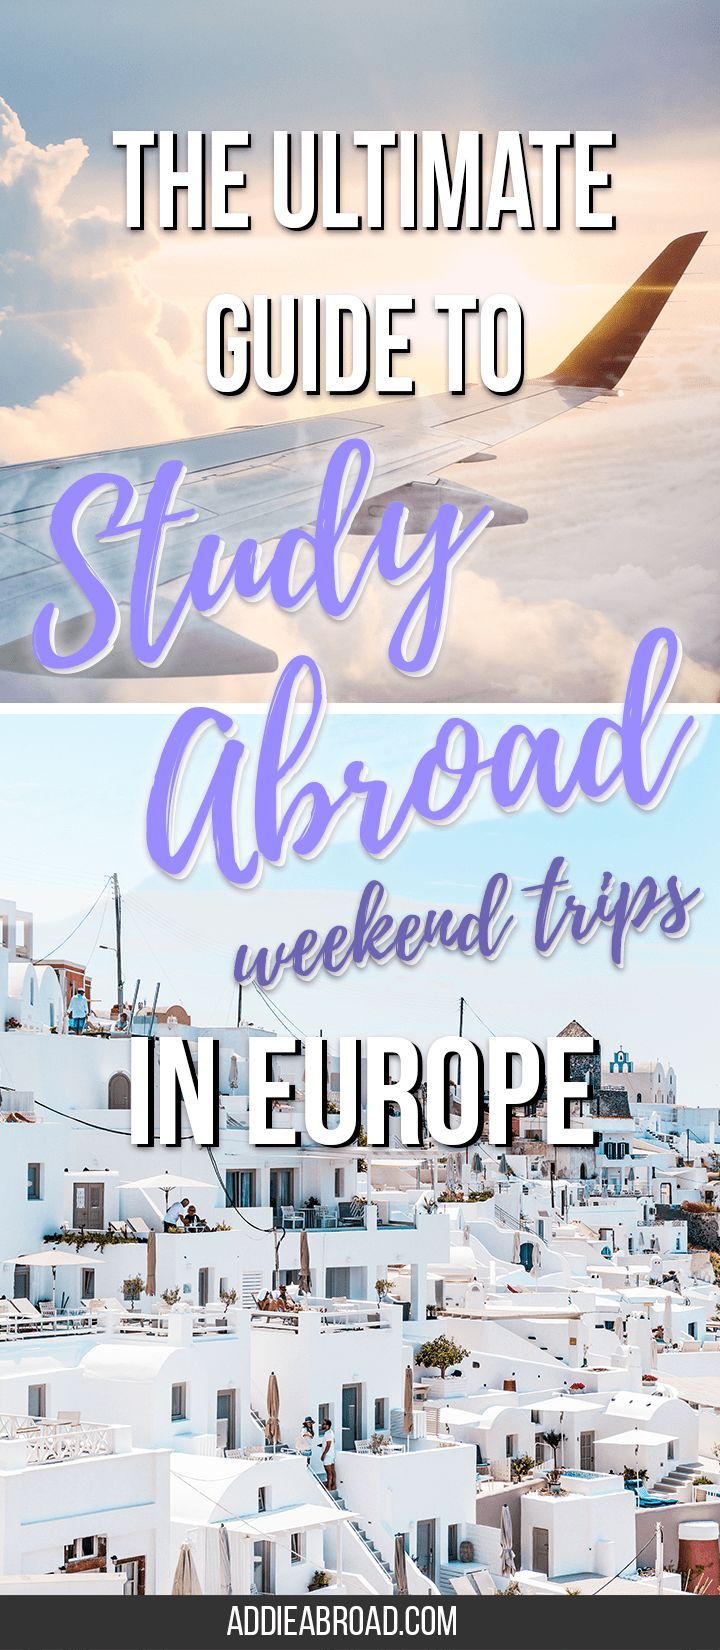 Taking weekend trips in Europe is one of the best parts of study abroad. Here's a guide on how to kick a** at study abroad weekend trips in Europe on a budget.